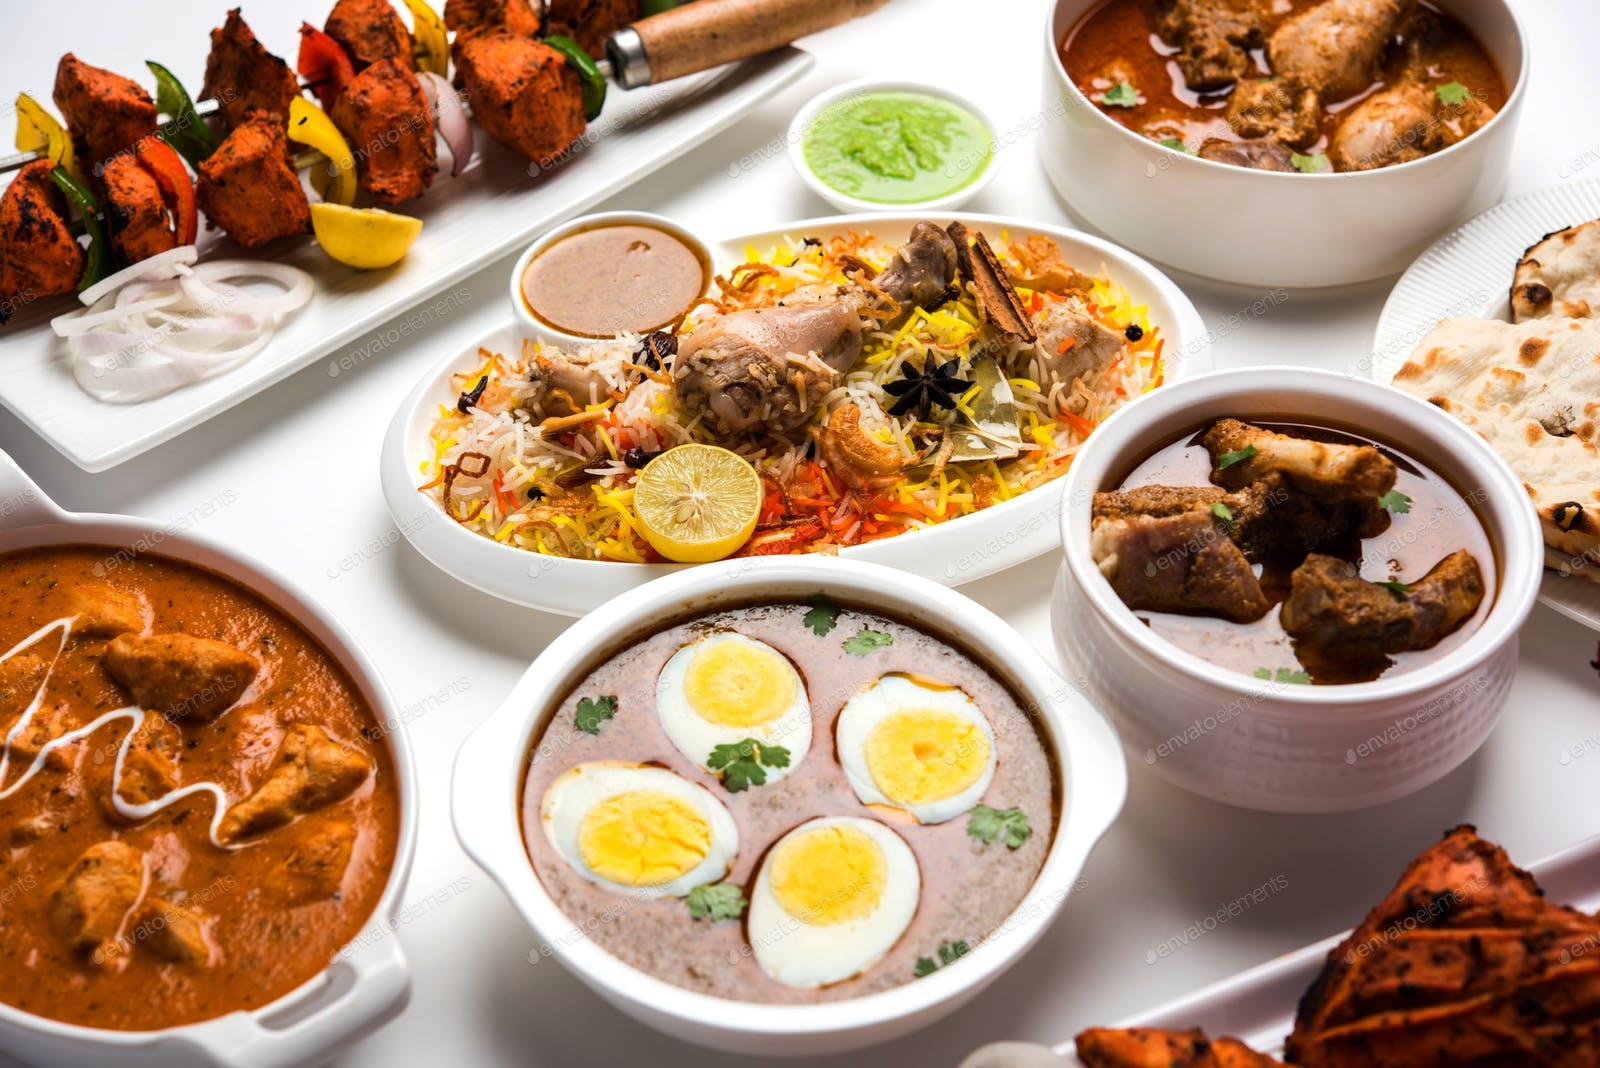 Group Of Assorted Indian Non Vegetarian Food Recipes Photo By Stockimagefactory On Envato Elements